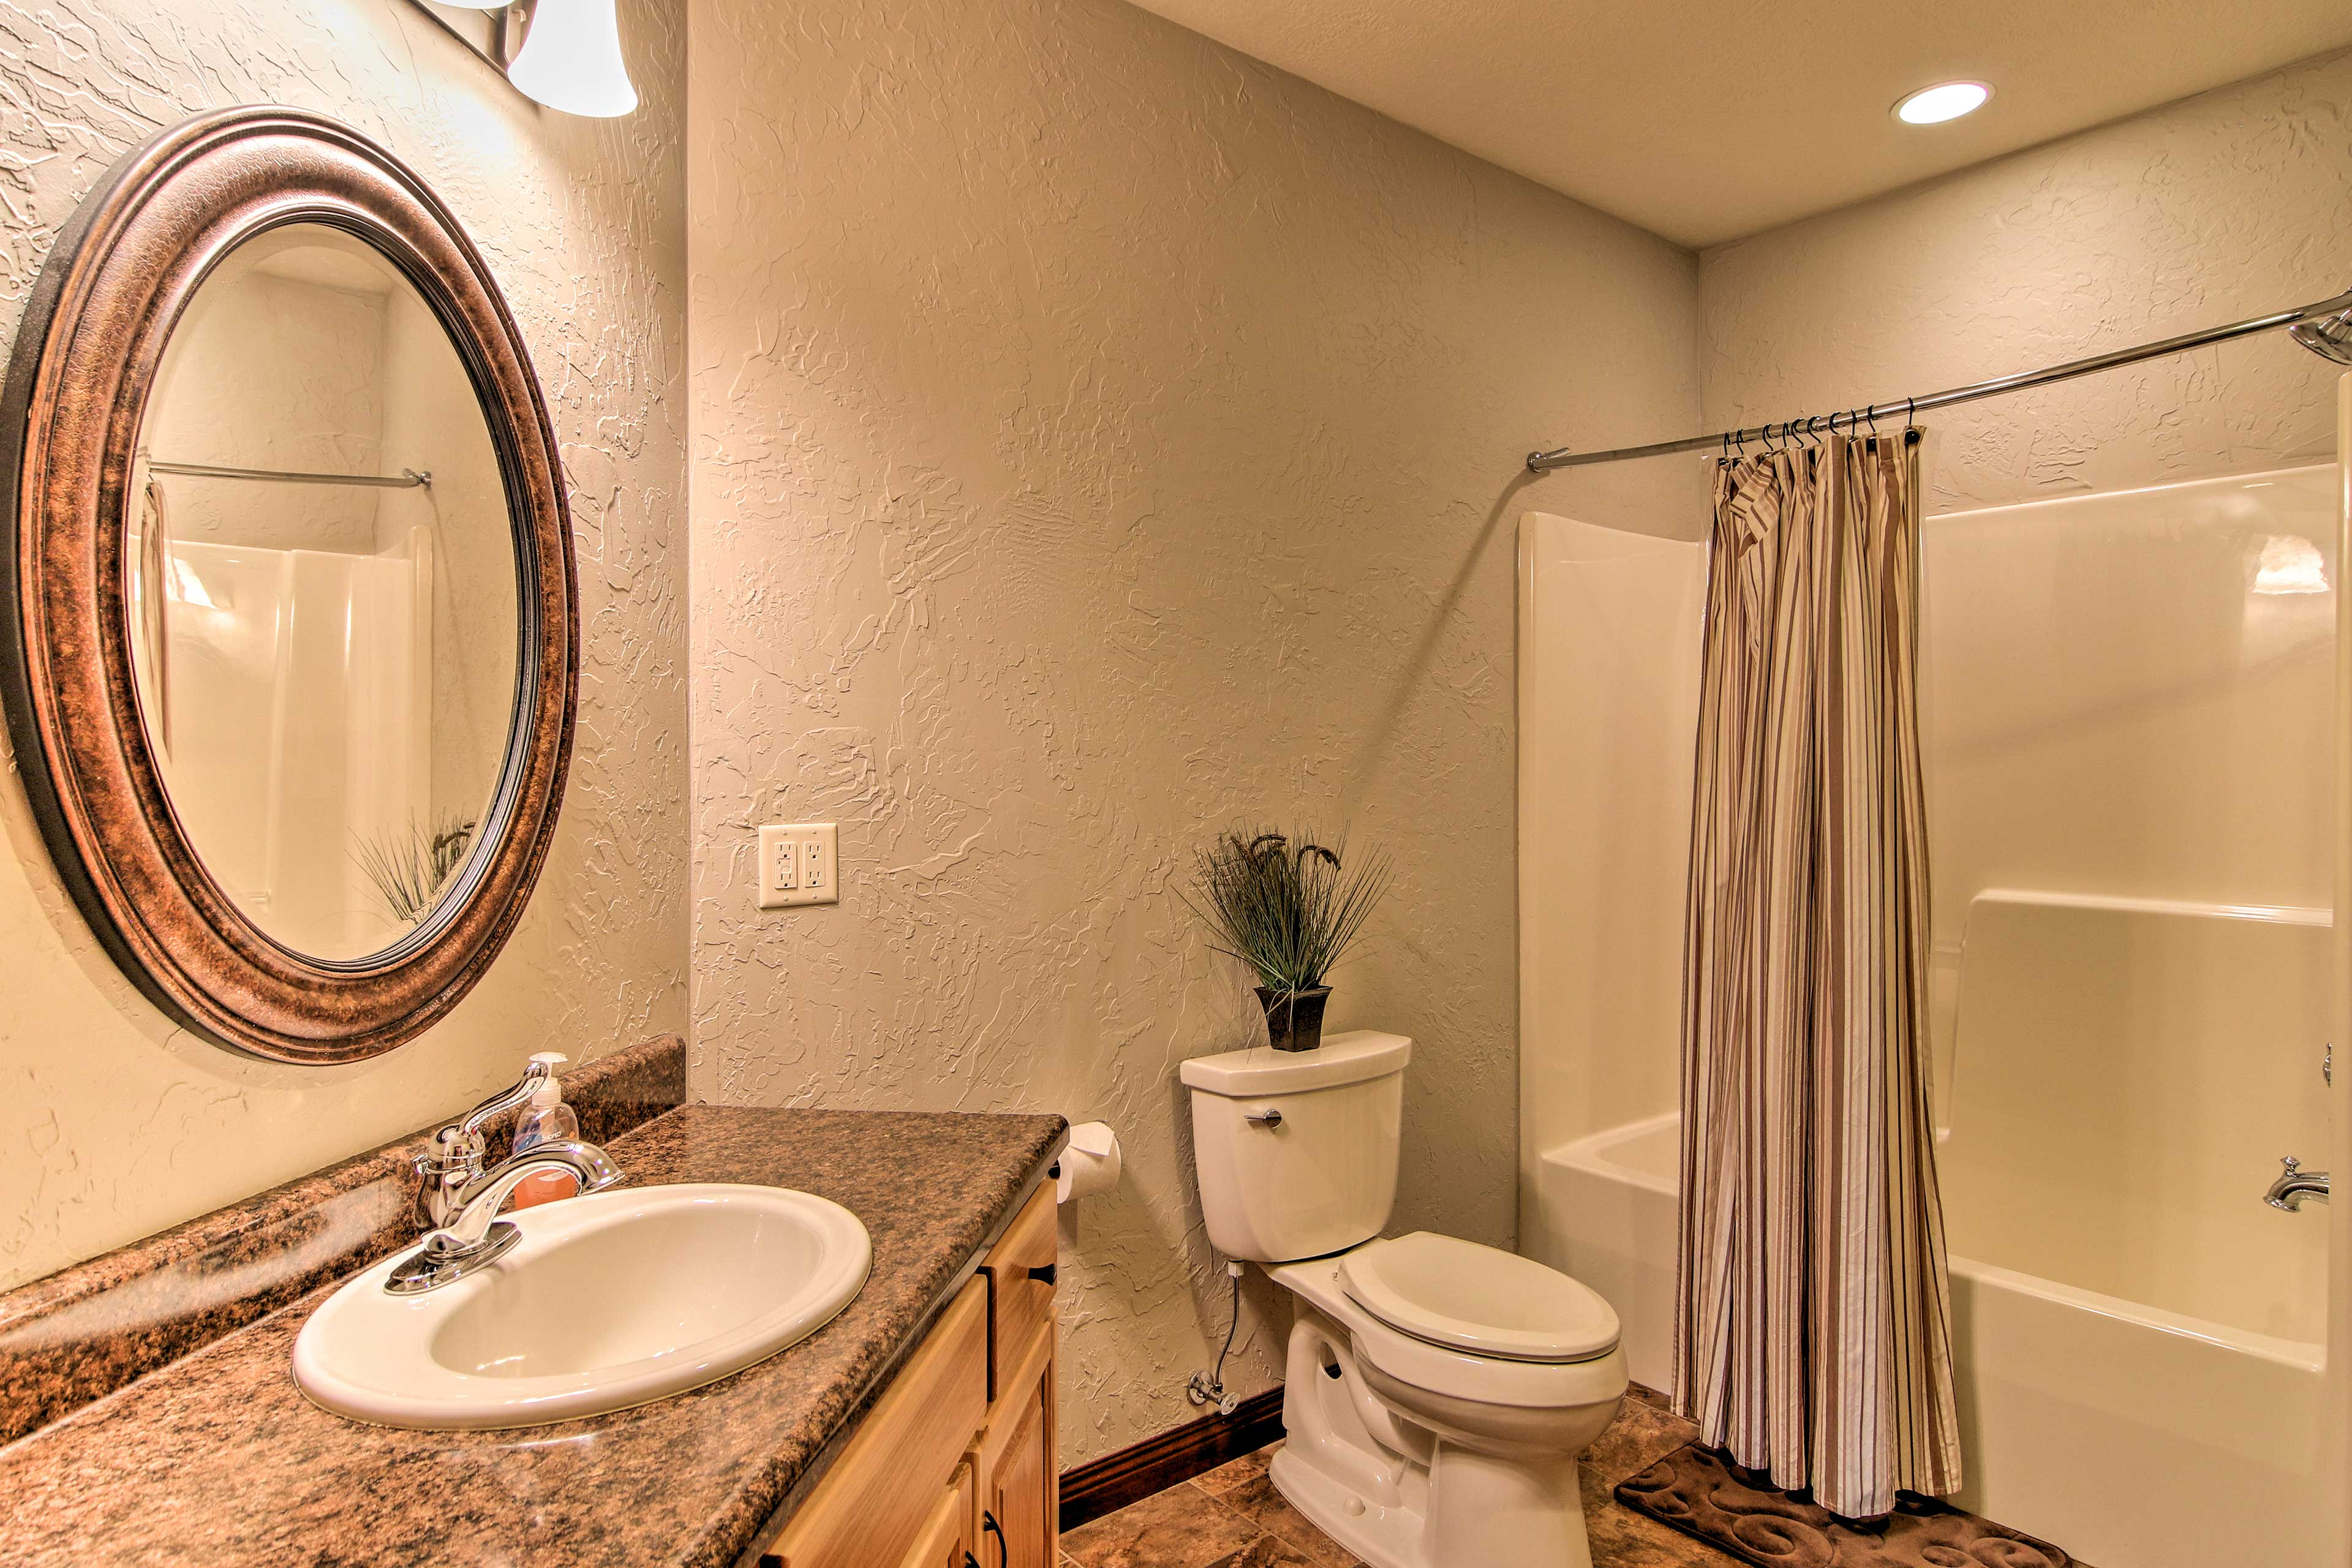 You'll also find a full bathroom in the lower level.